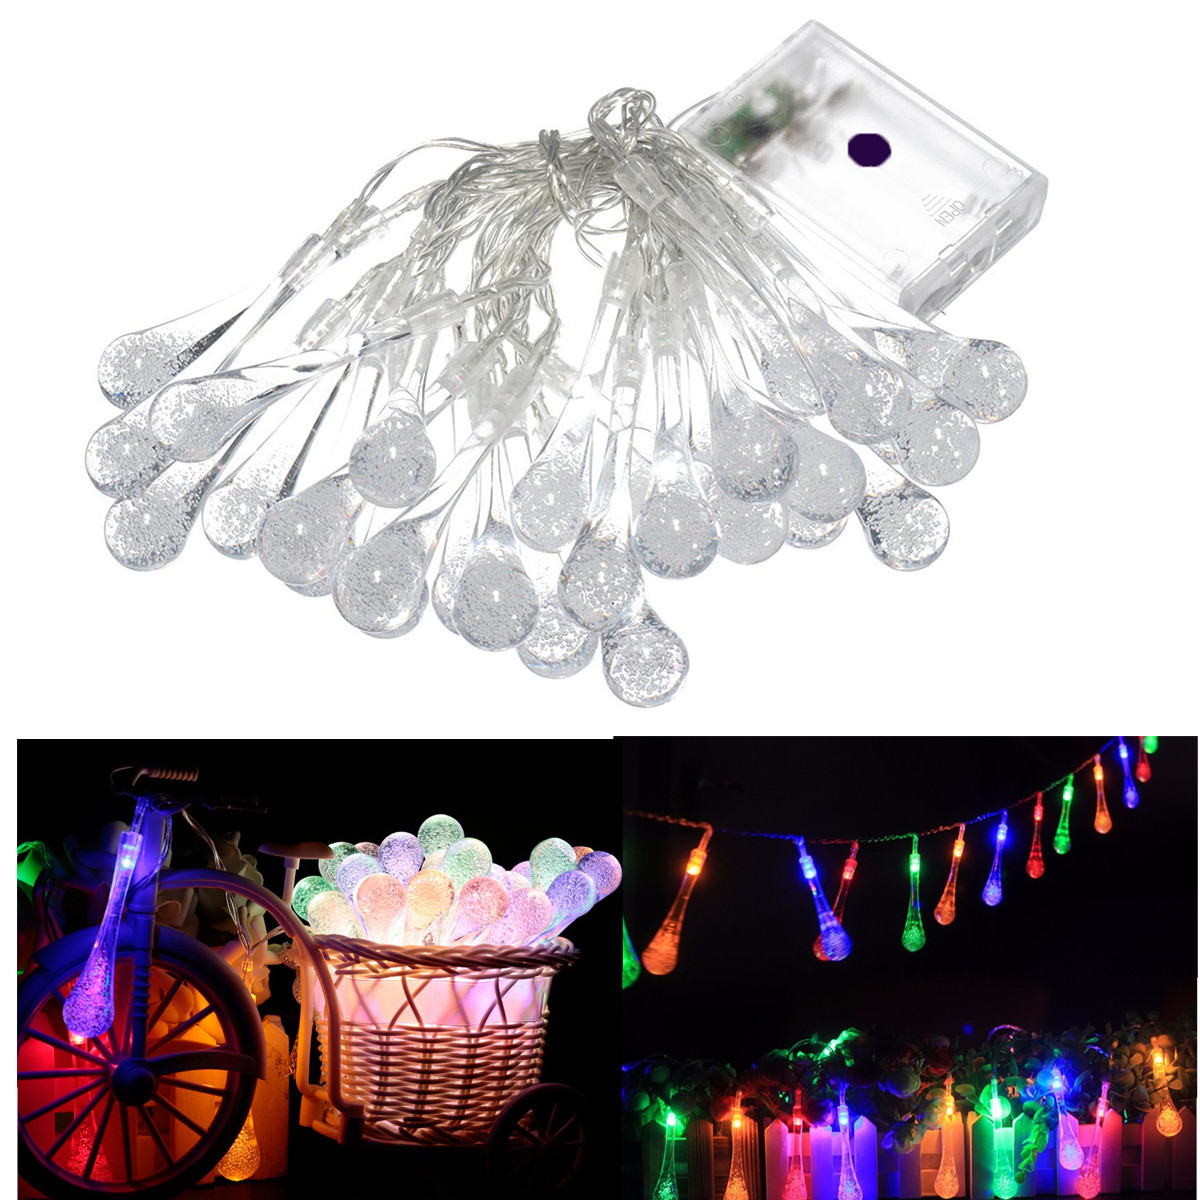 Approx. 3.2M Power saving 30 LED Battery Powered Raindrop Fairy String Light Outdoor Xmas Wedding Christmas Garden Party Decor